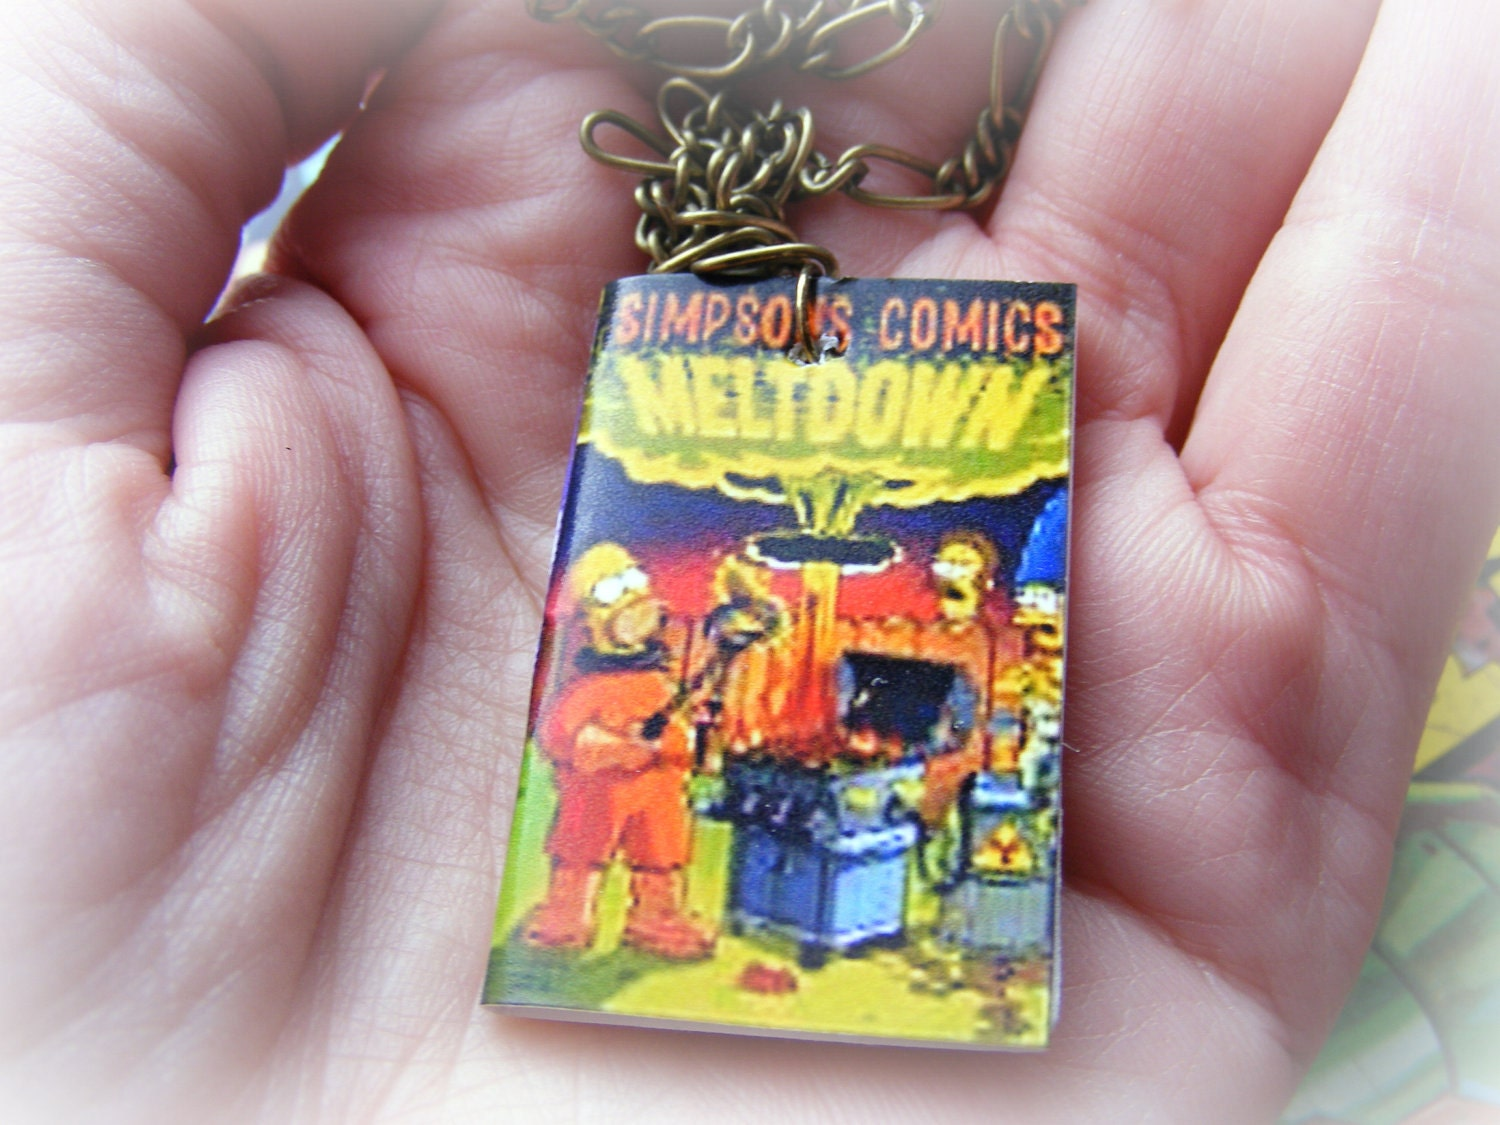 Earrings or Necklace The Simpsons Miniature Comic Book